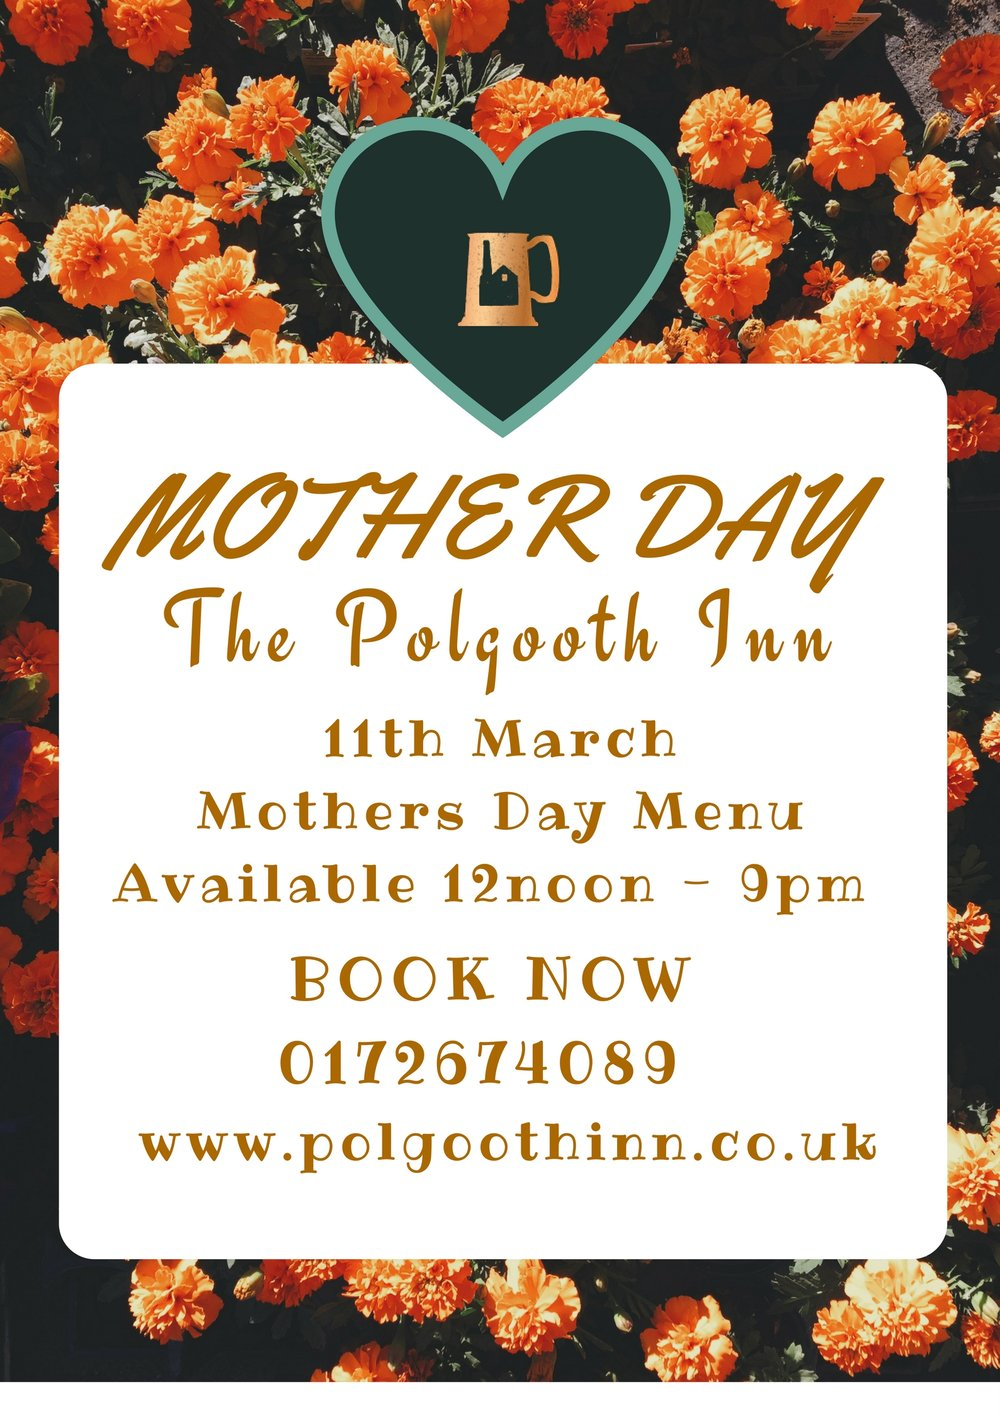 Book Now For Mothers Day 0172674089